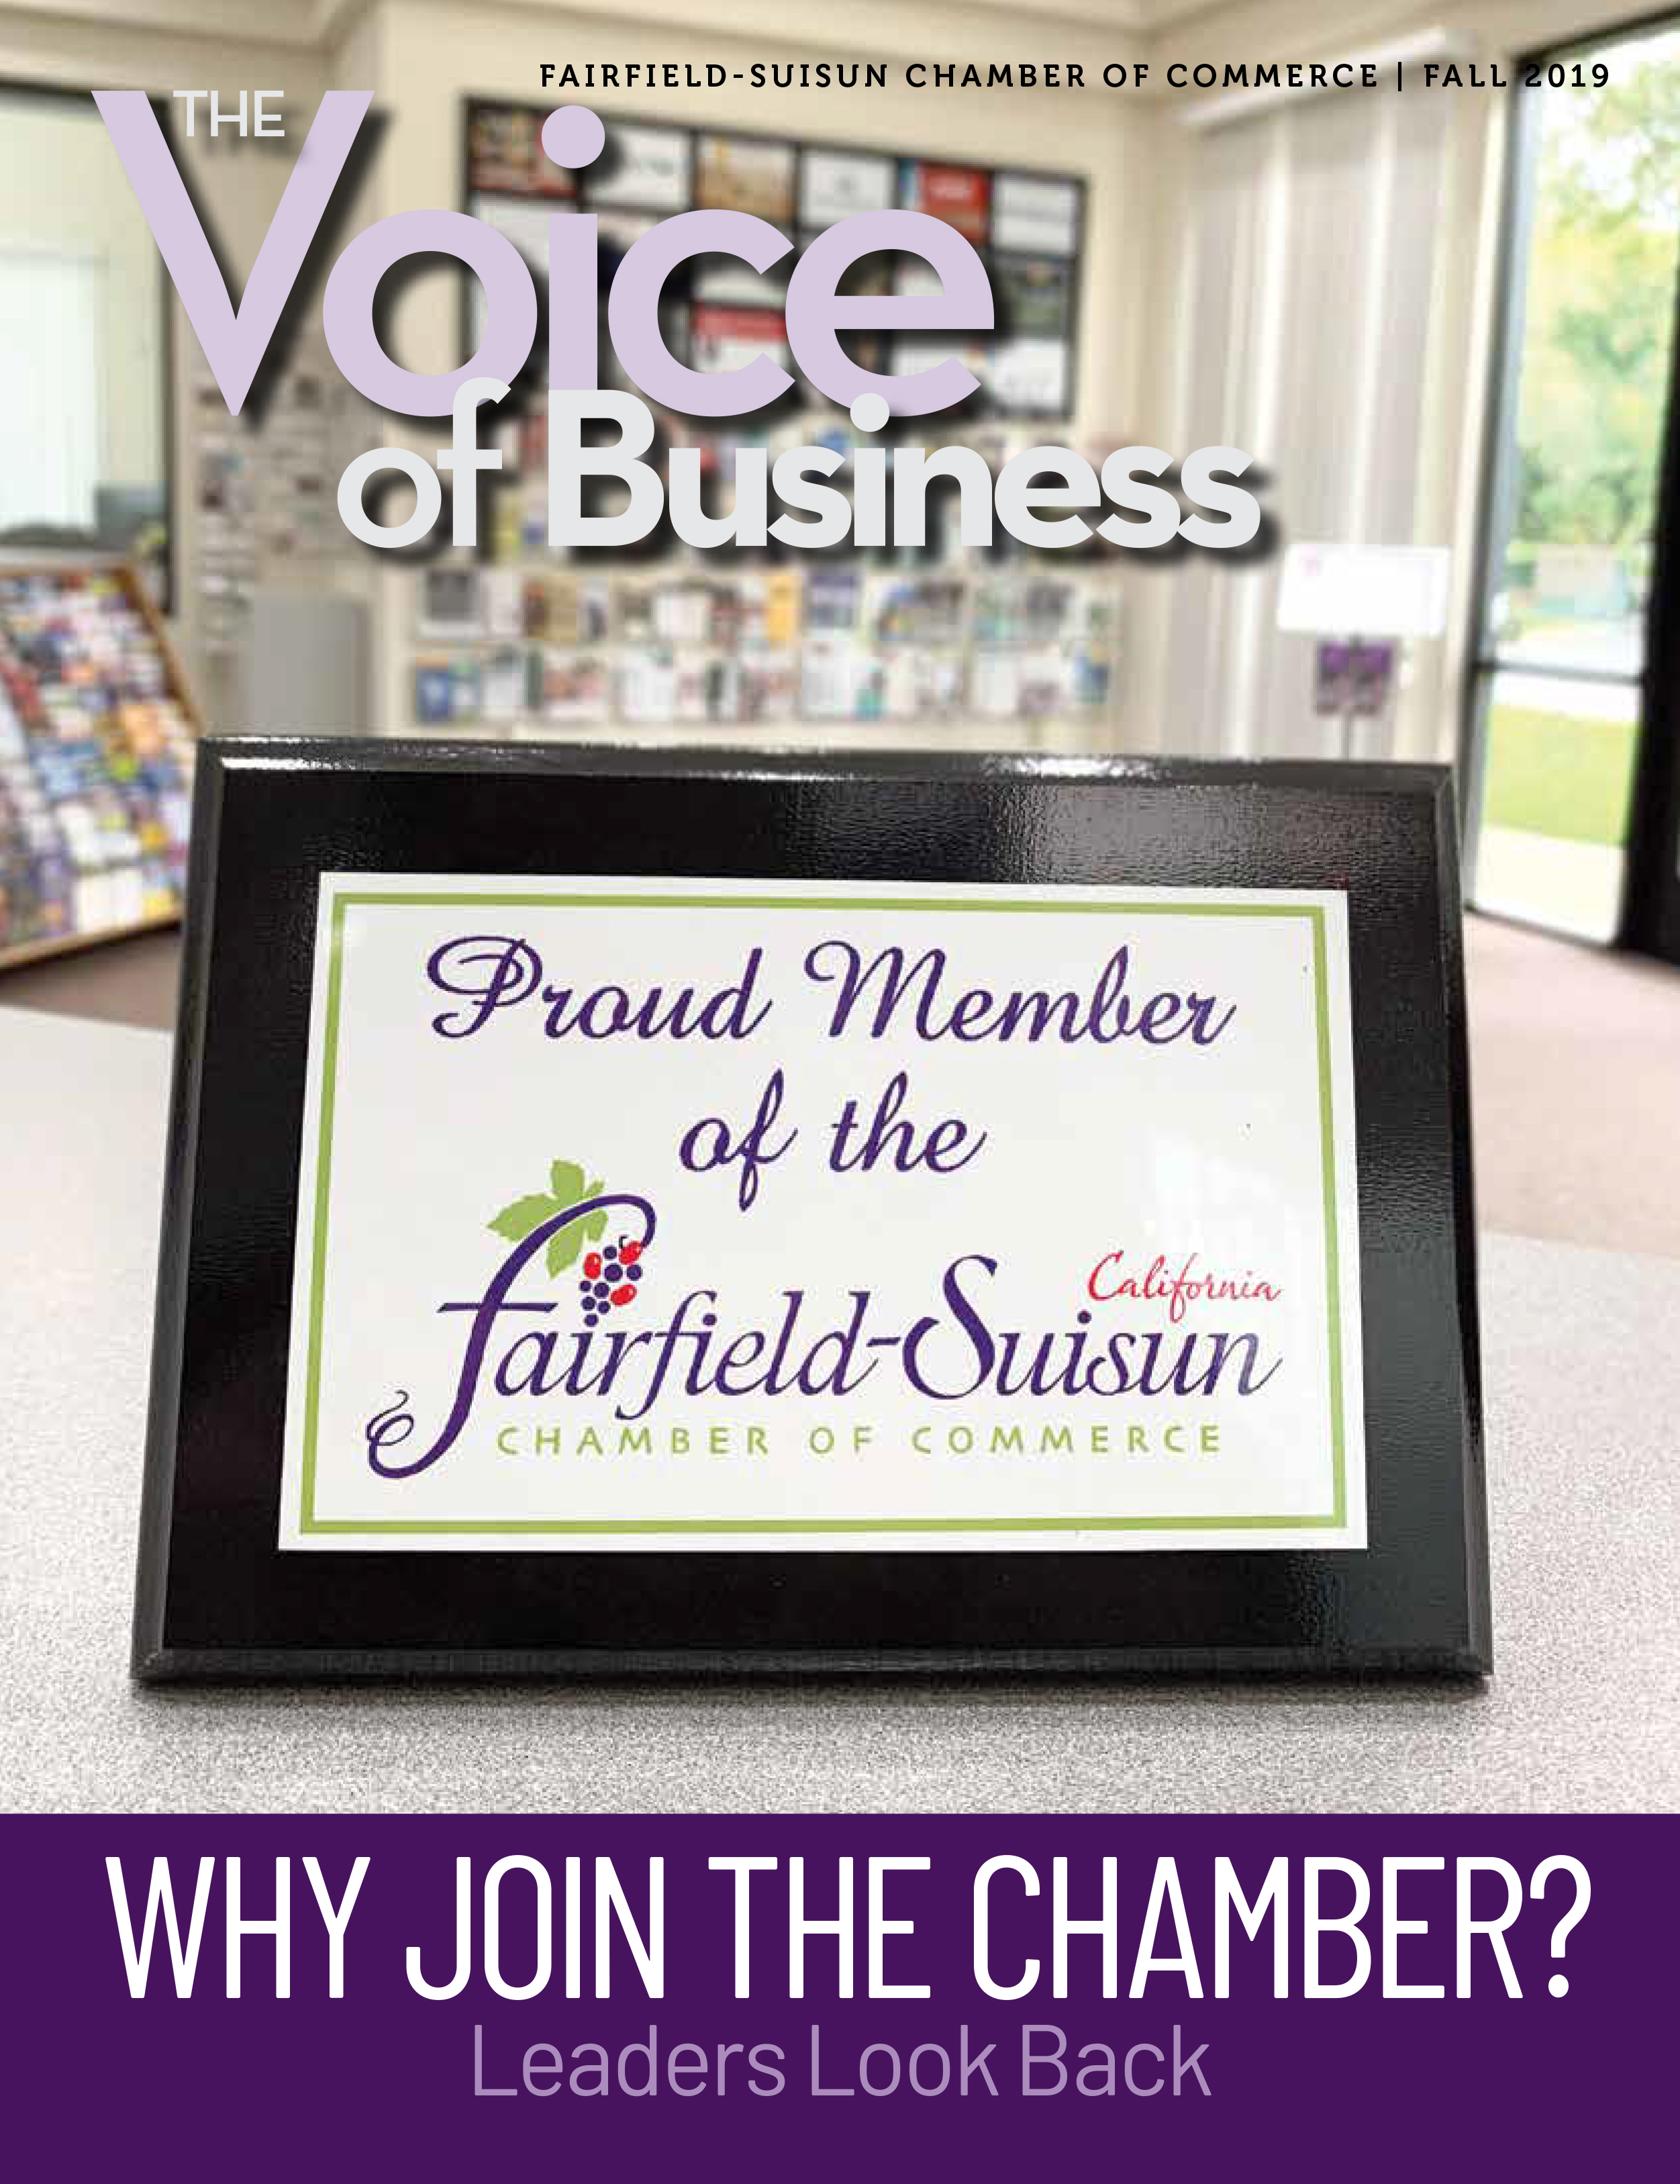 The_Voice_of_Business_Fall_2019